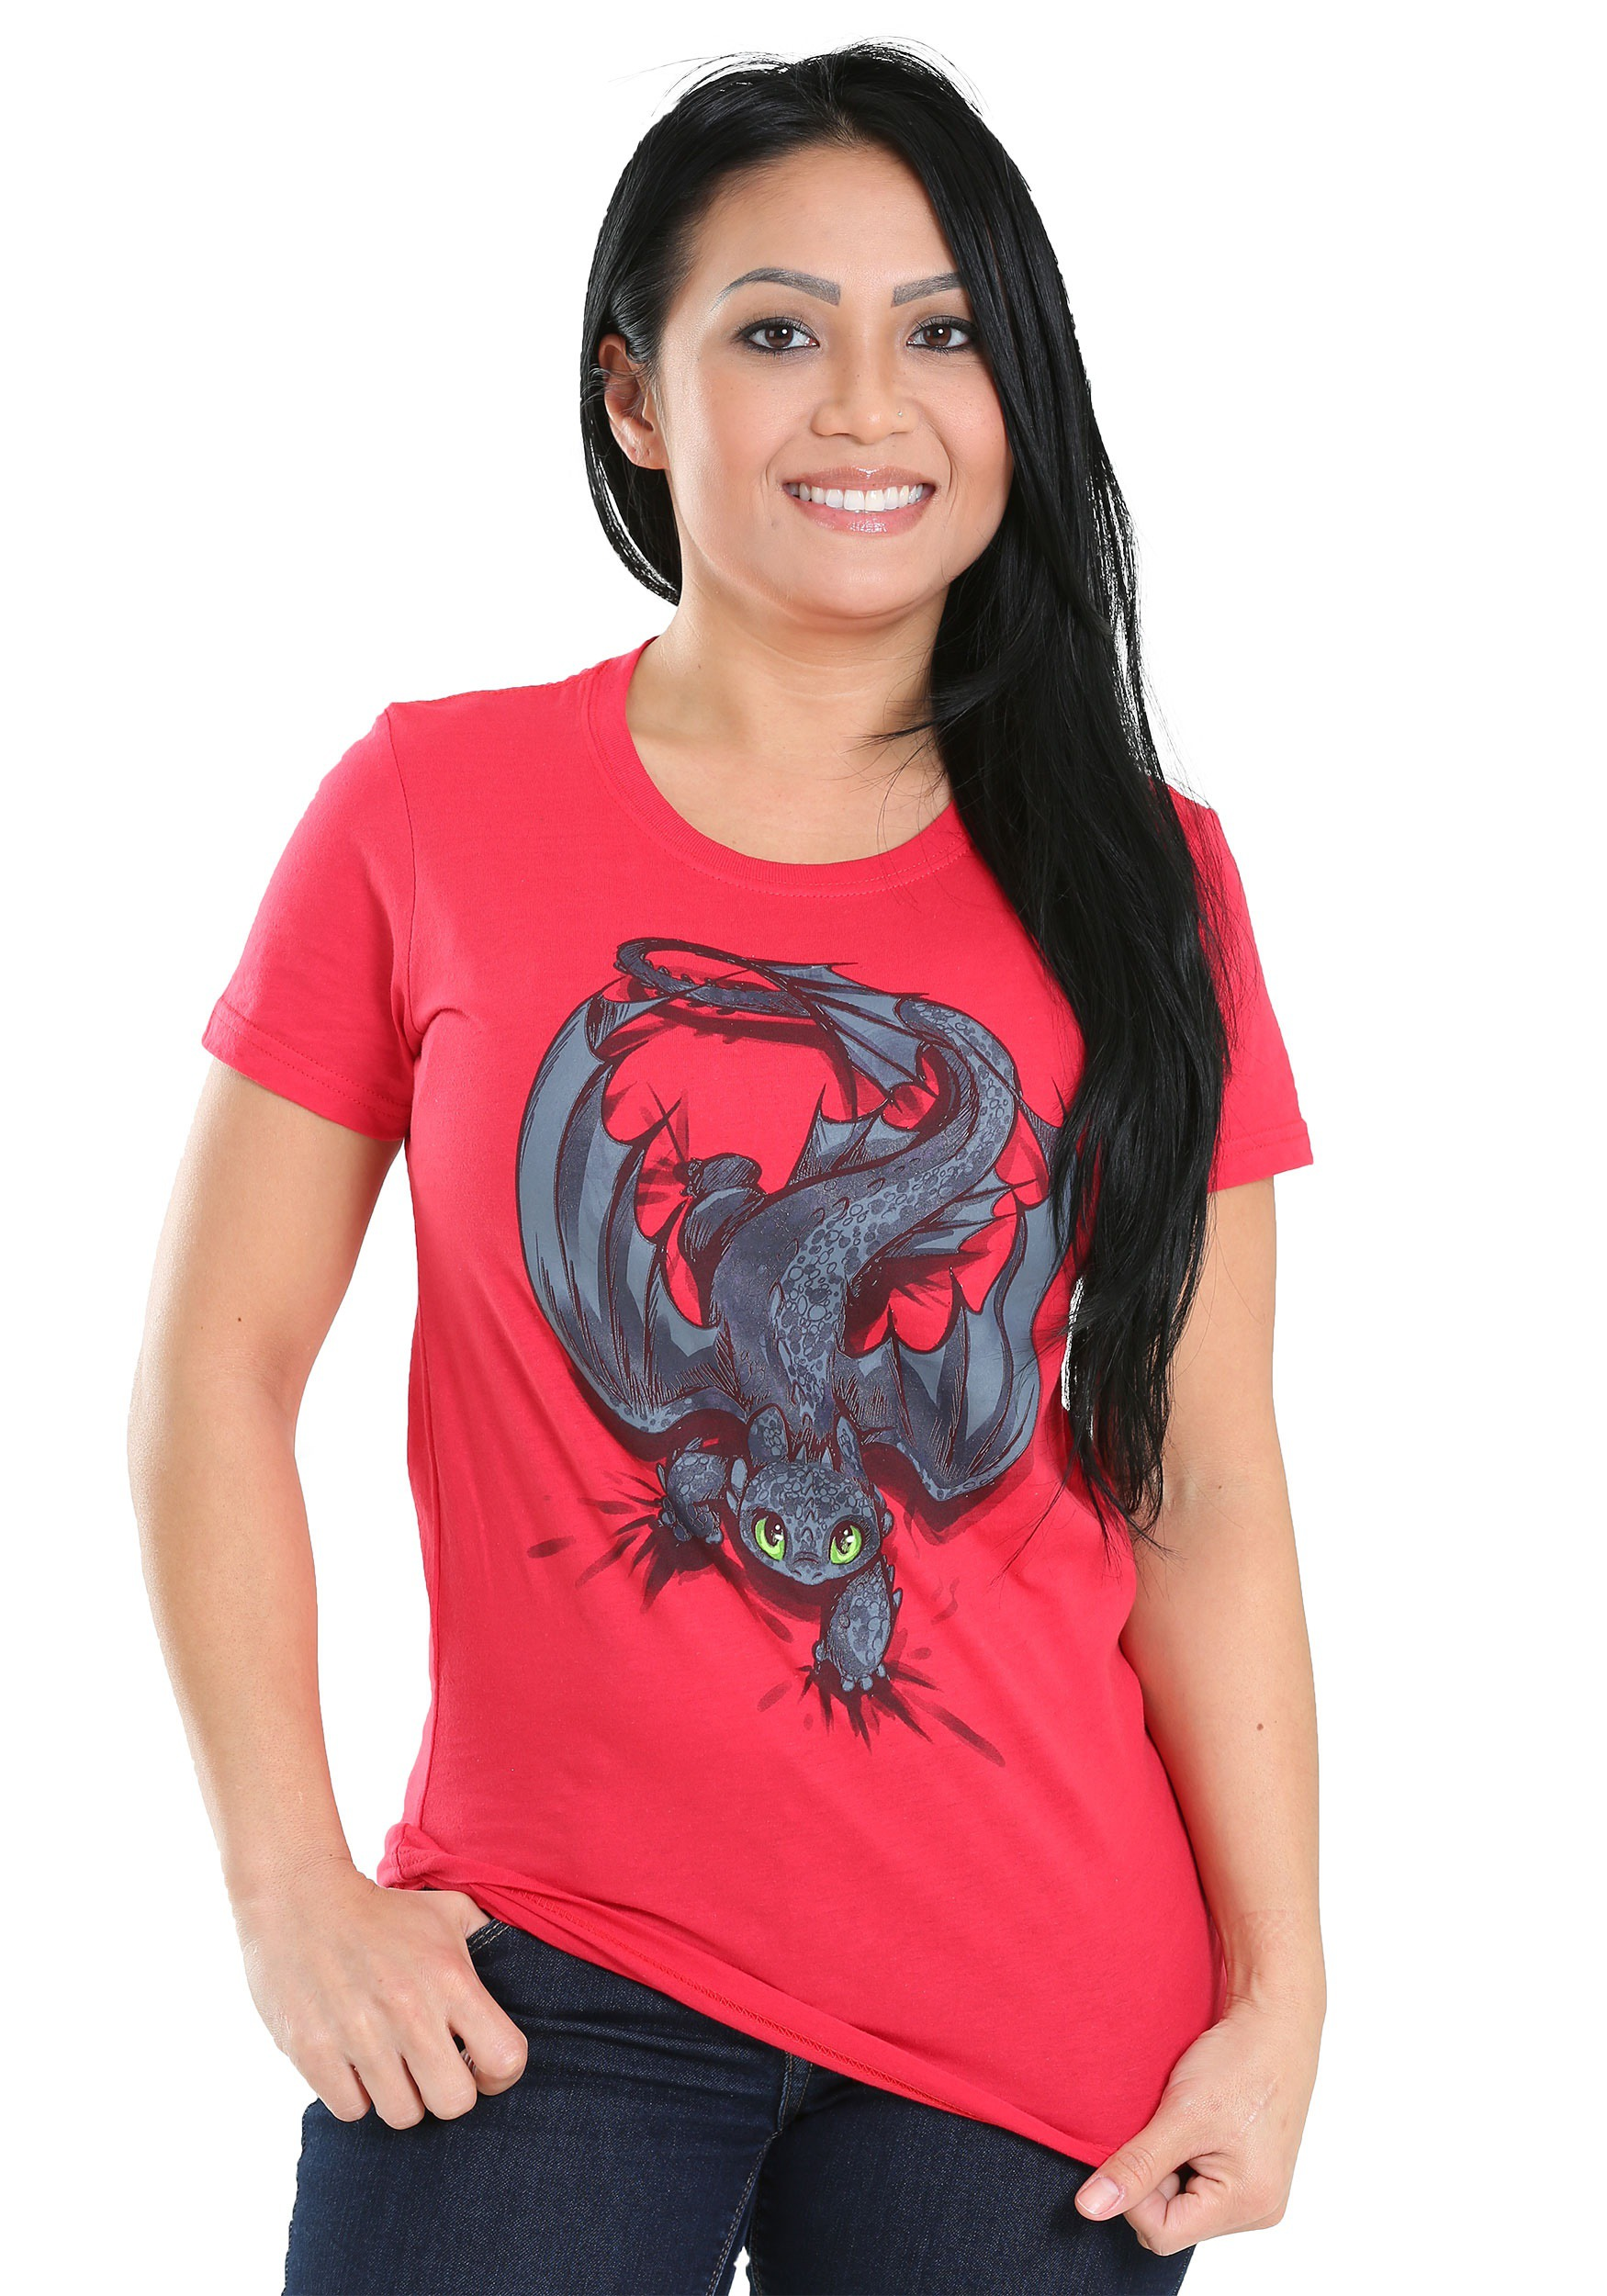 How To Train Your Dragon Night Fury X-ing Juniors T-Shirt MFA5650CDD1